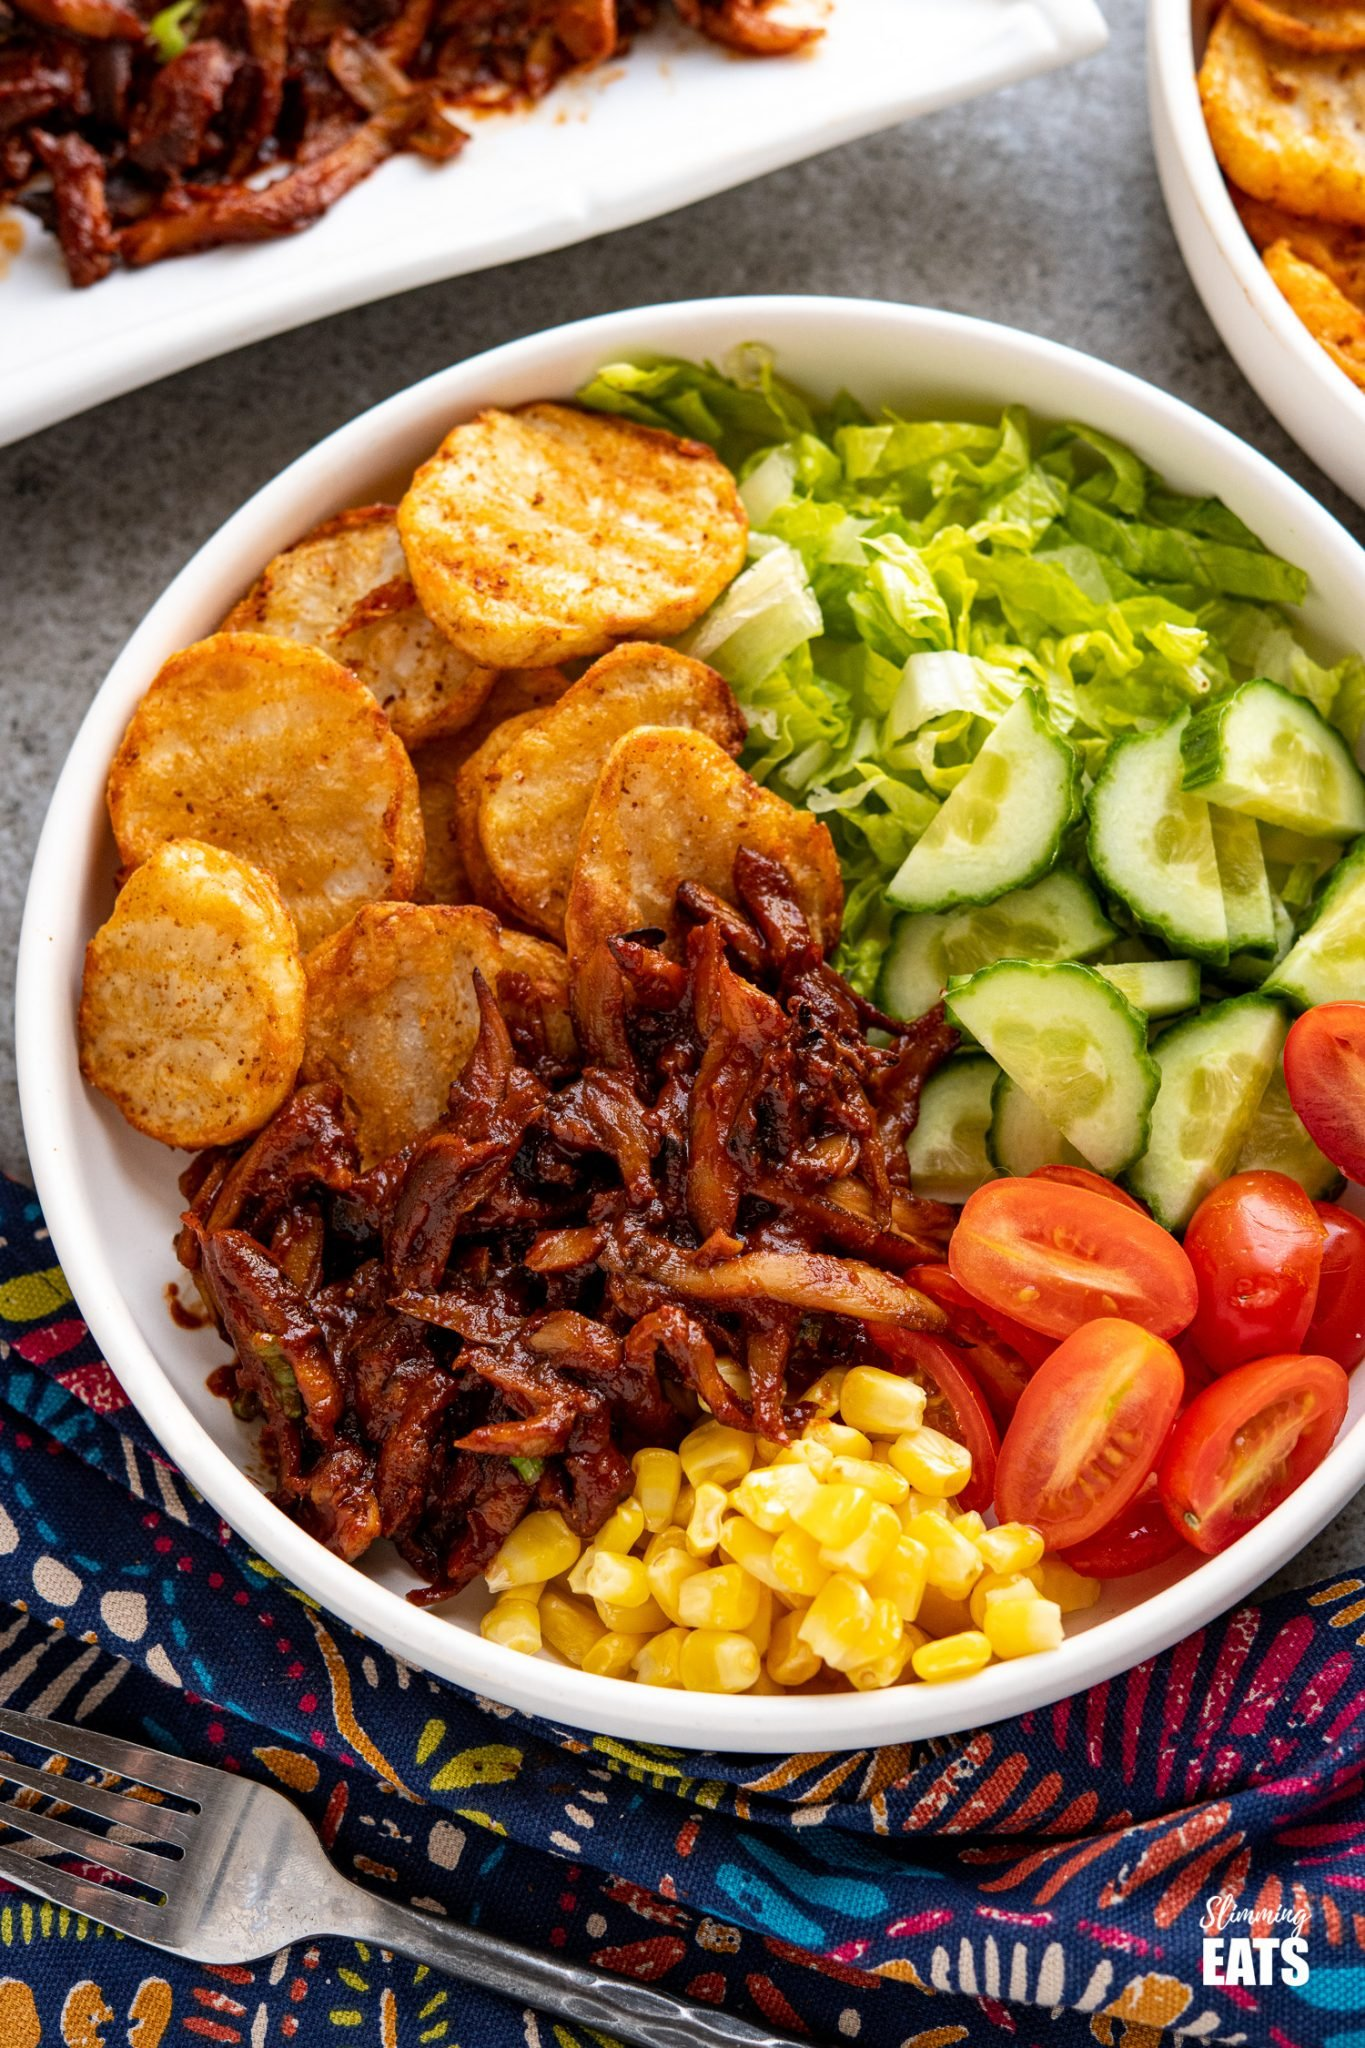 Pulled Mushrooms with BBQ Sauce in white bowl with crispy potato slices, corn and salad.